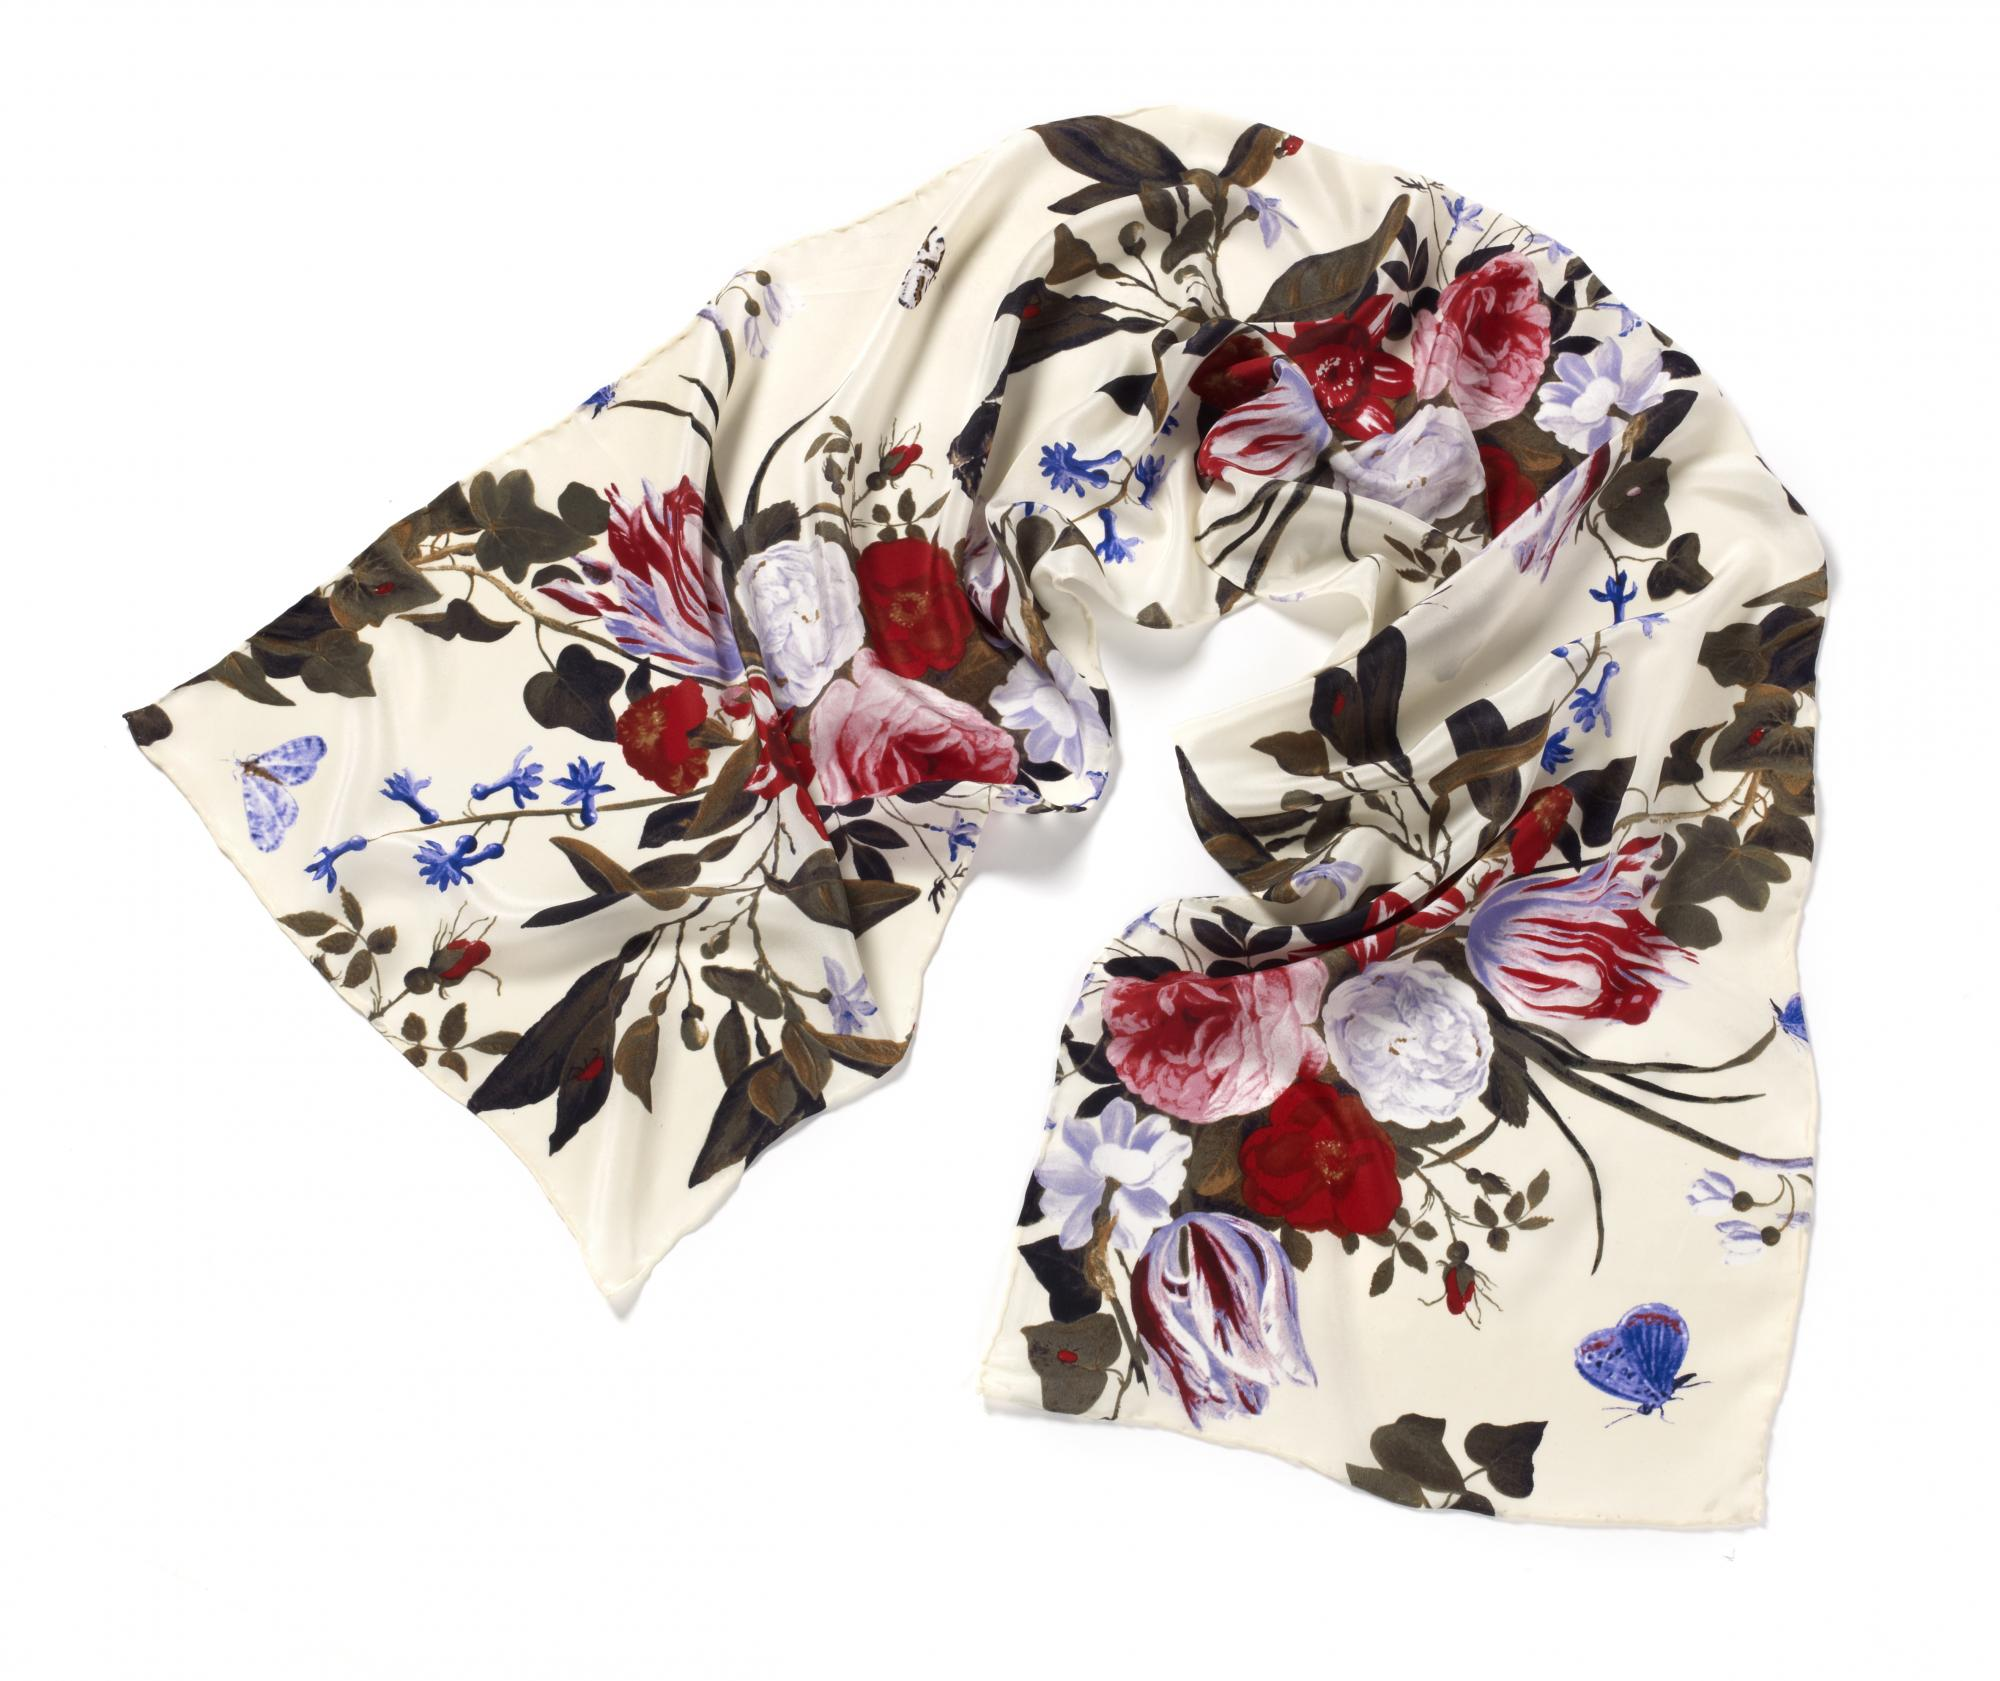 Still Life by Jan van Kessel silk scarf